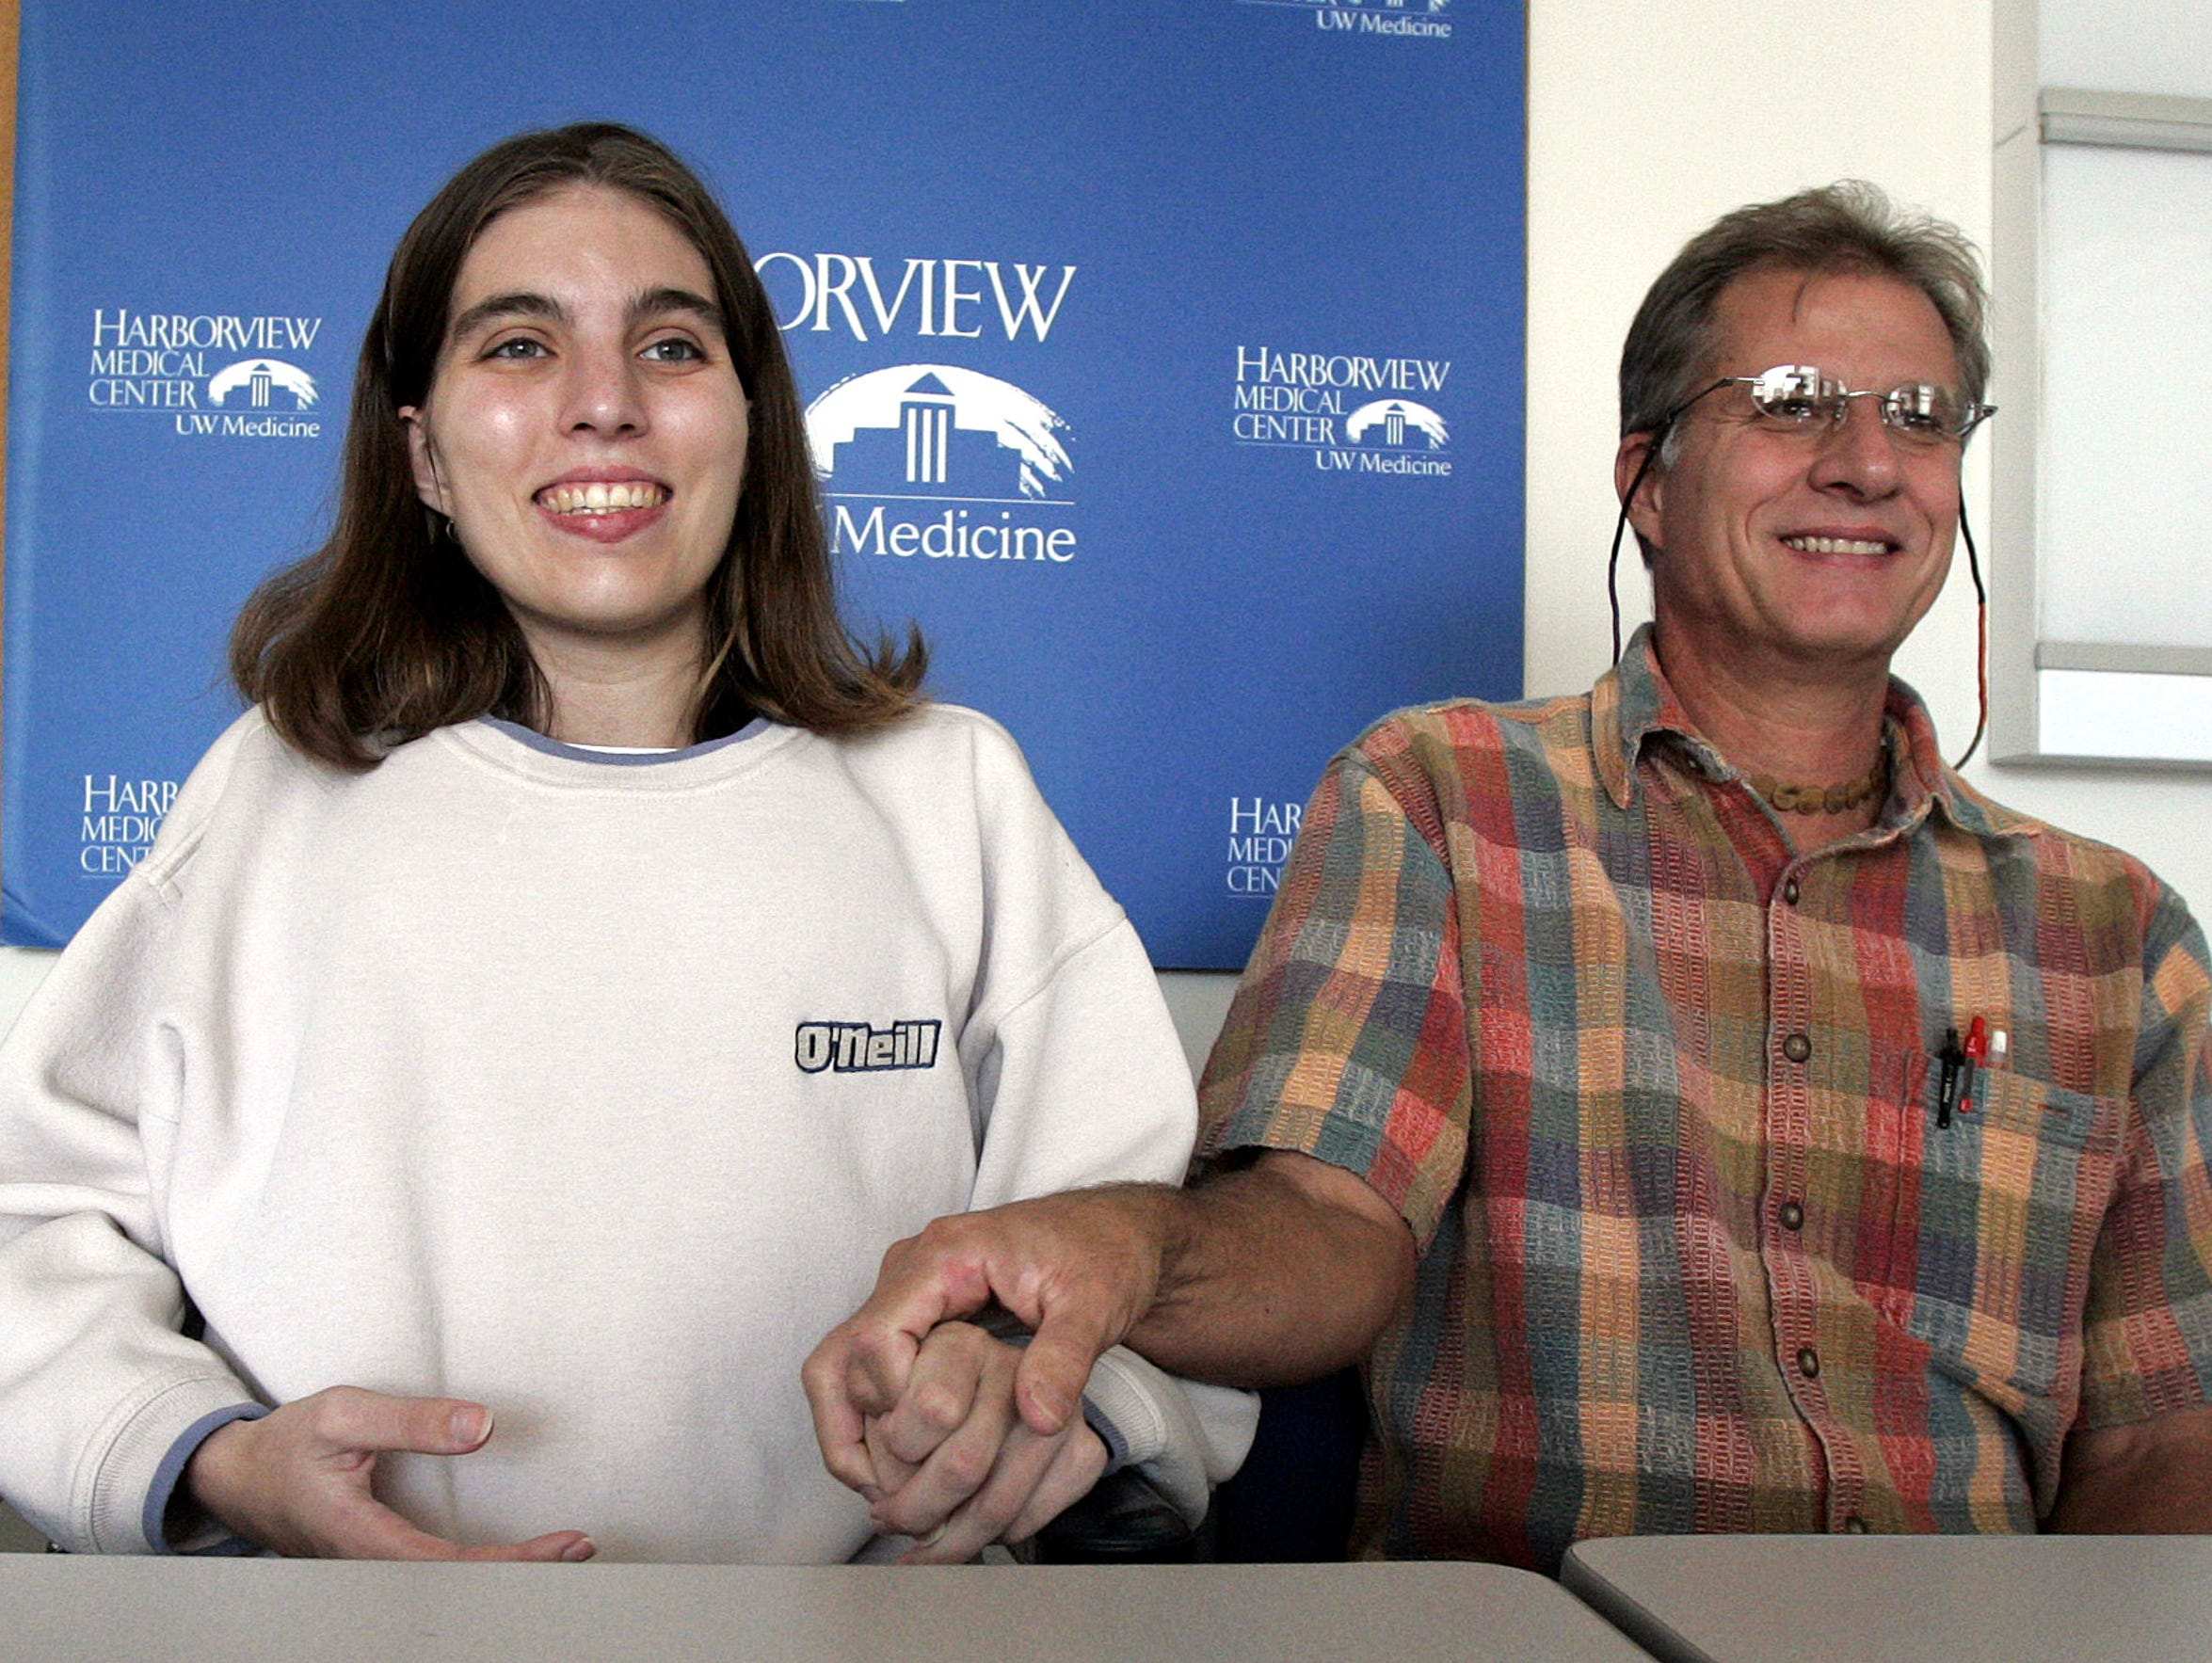 Vernon Bush, right, reaches out to take the hand of his daughter, Layla Bush, following a news conference Sept. 12, 2006, at Seattle's Harborview Medical Center. Bush had been wounded two months earlier in a mass shooting at the Jewish Federation of Greater Seattle. In the podcast Aftermath, Bush describes the trauma endured by her loved ones, including her father, following her shooting.